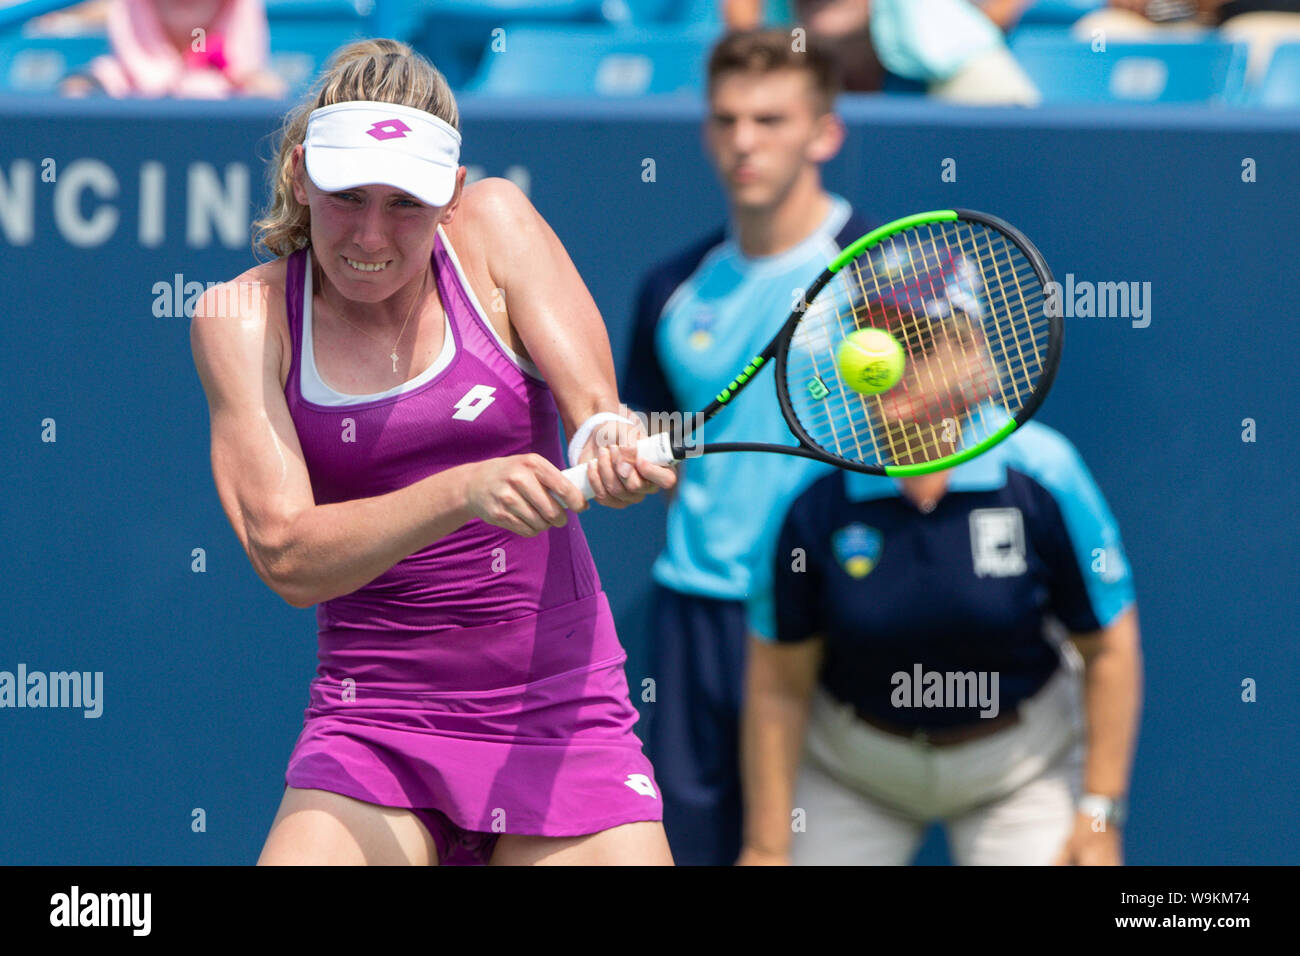 Mason, Ohio, USA. 14th Aug, 2019. Ekaterina Alexandrova (RUS) hits a backhand shot during Wednesday's round of the Western and Southern Open at the Lindner Family Tennis Center, Mason, Oh. Credit: Scott Stuart/ZUMA Wire/Alamy Live News Stock Photo